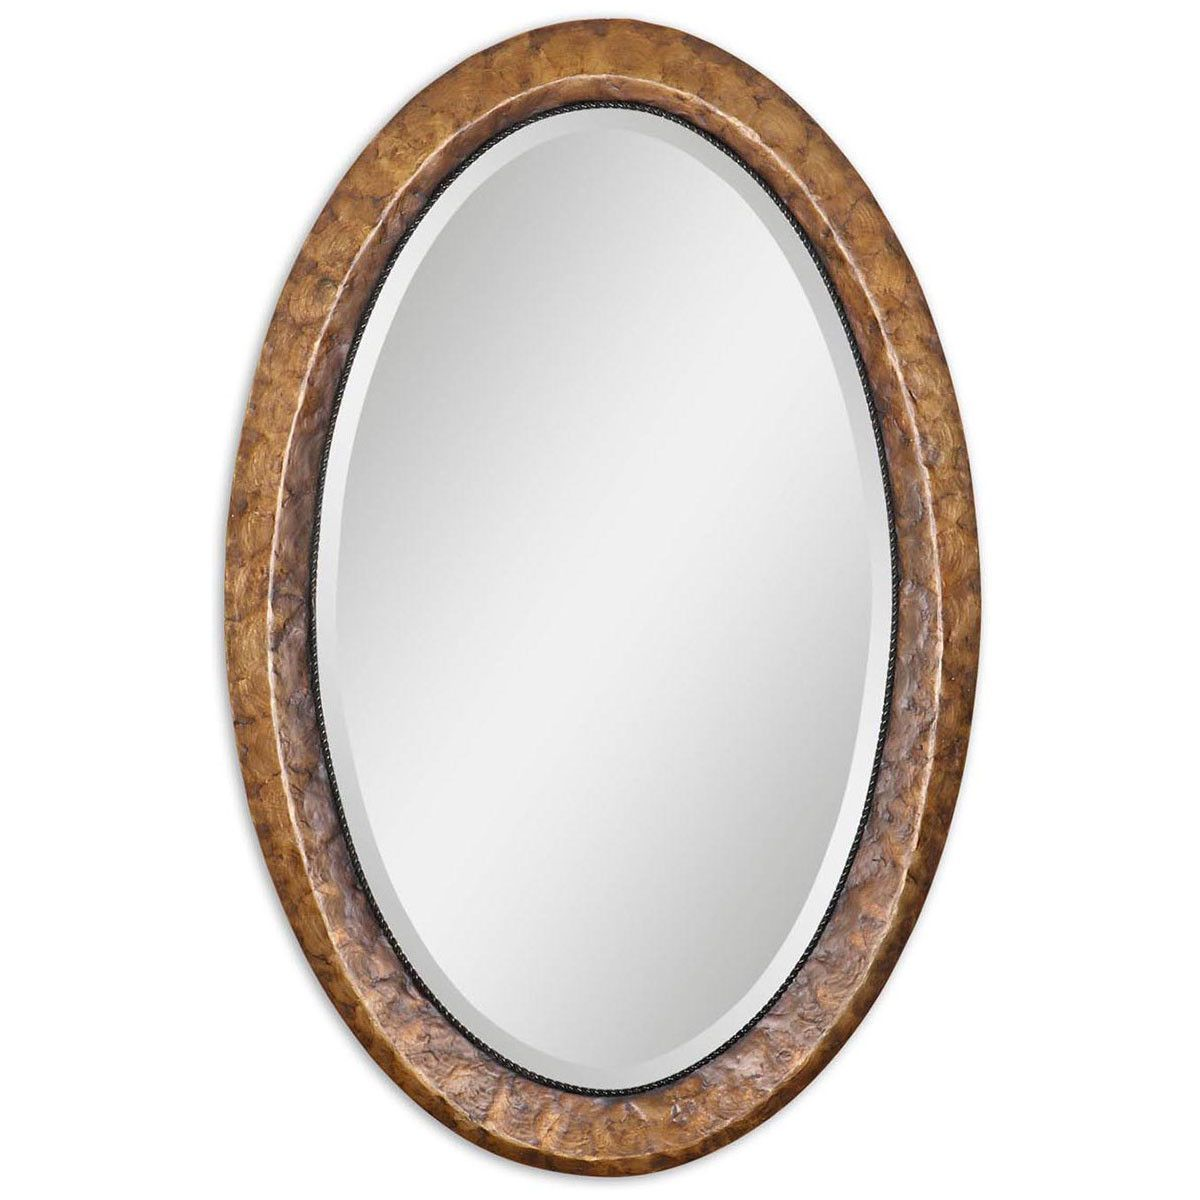 Uttermost Capiz Oval Vanity Mirror 07602 With Images Capiz